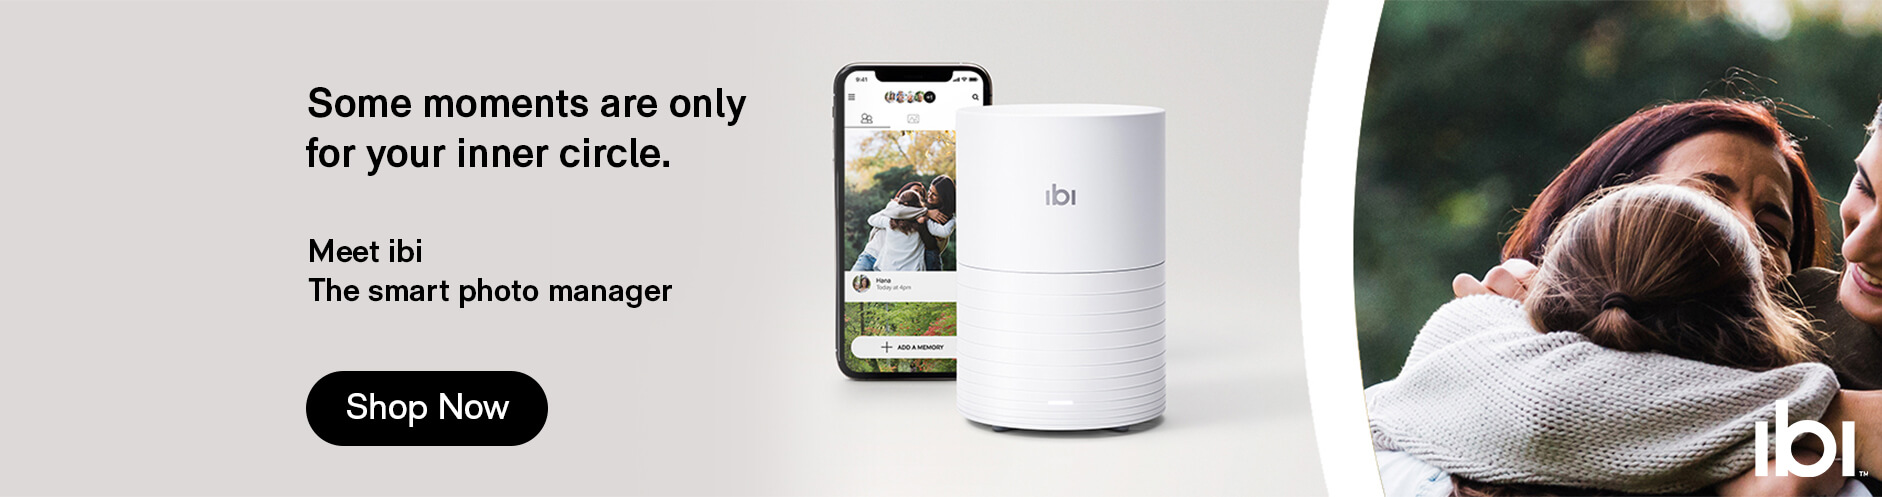 ibi Smart Photo Manager